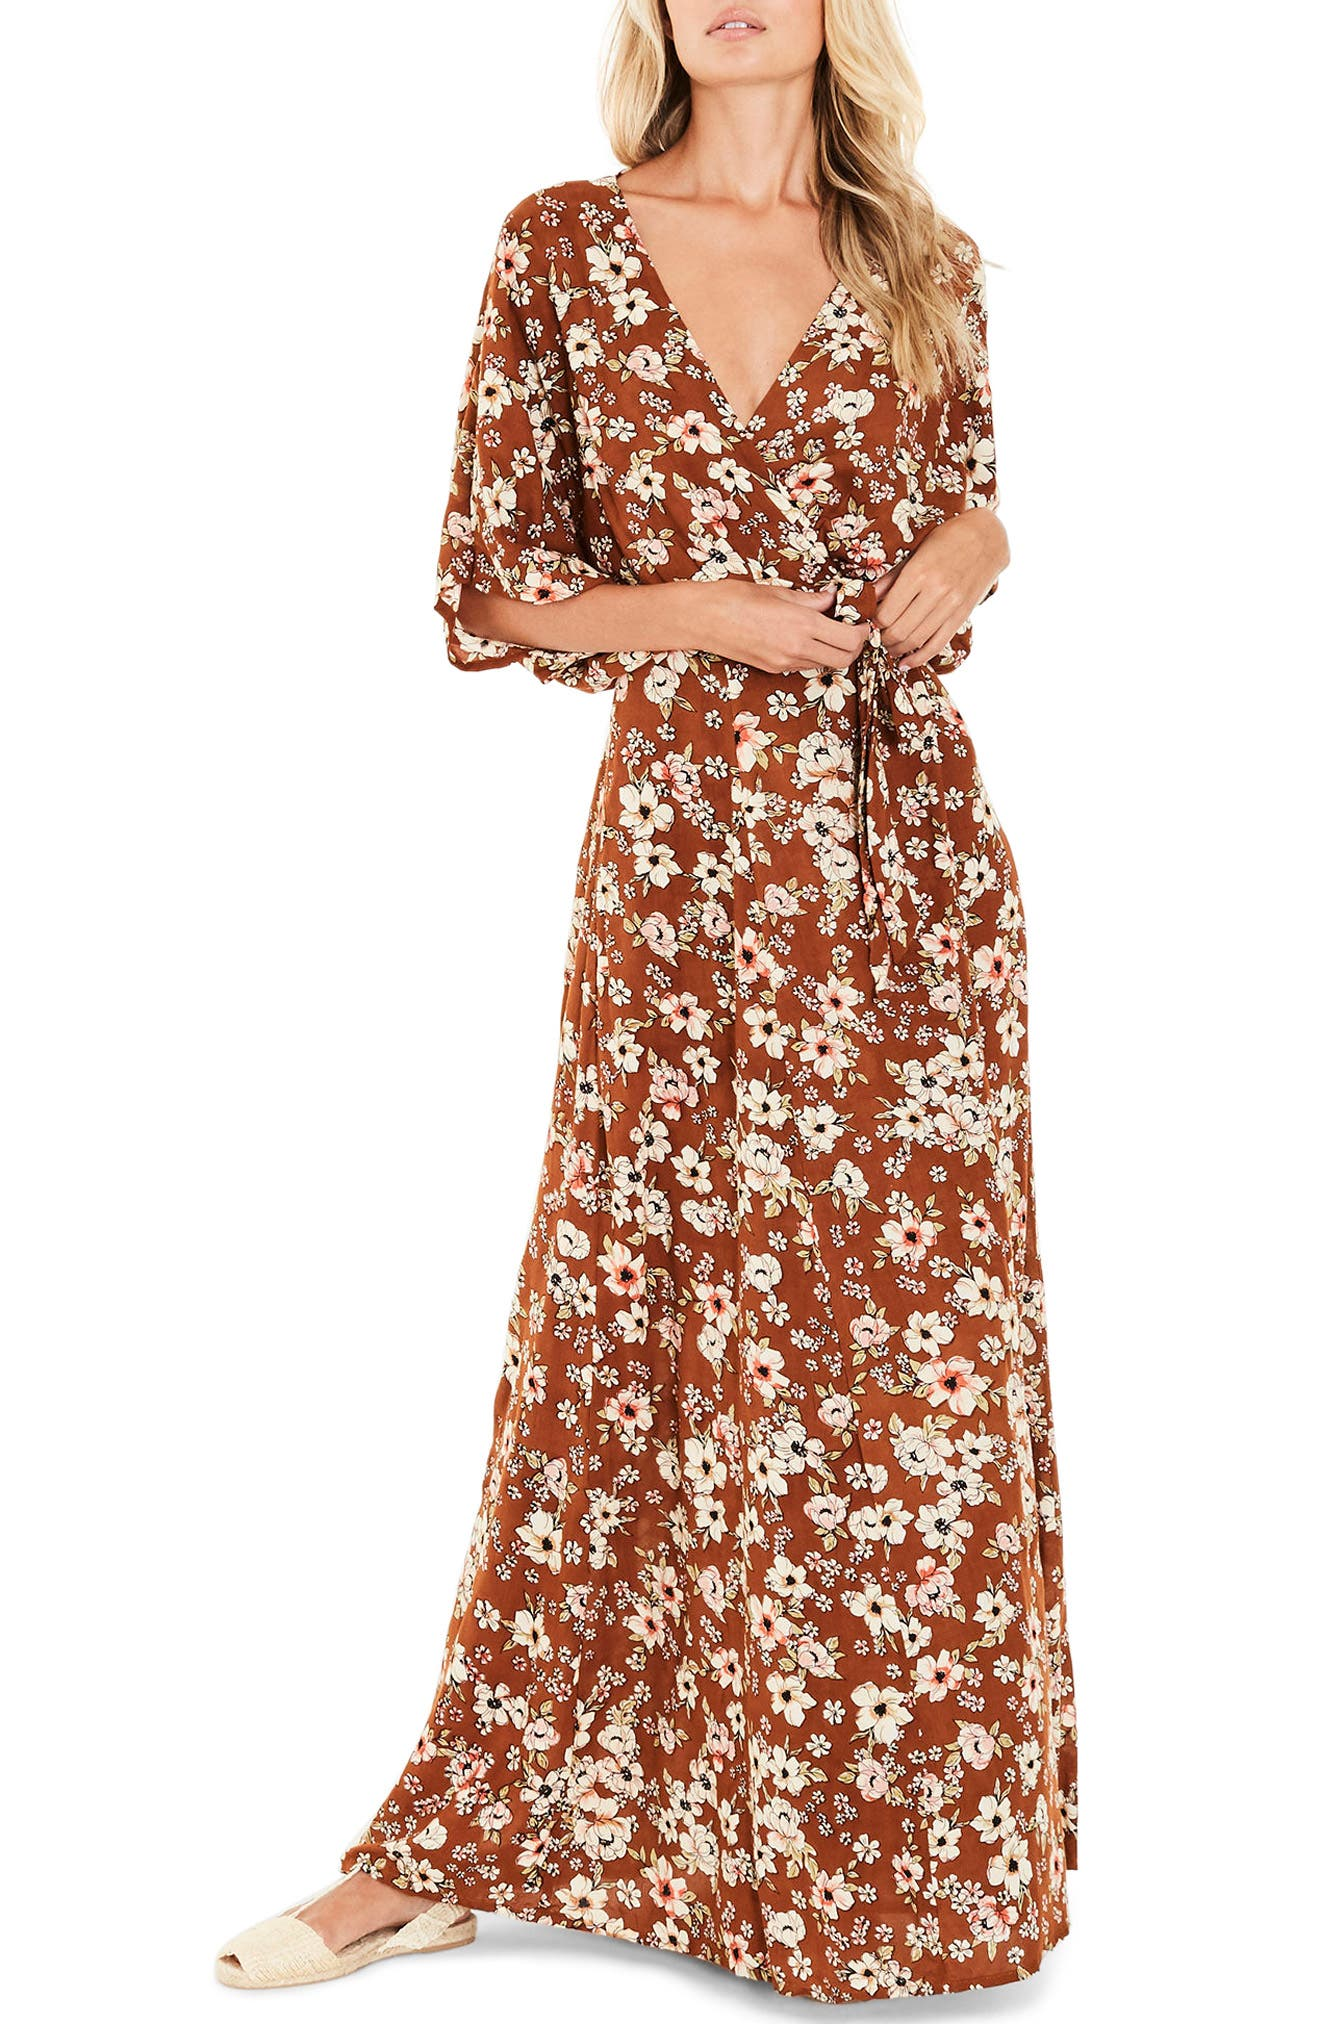 FAITHFULL THE BRAND Bergamo Maxi Wrap Dress